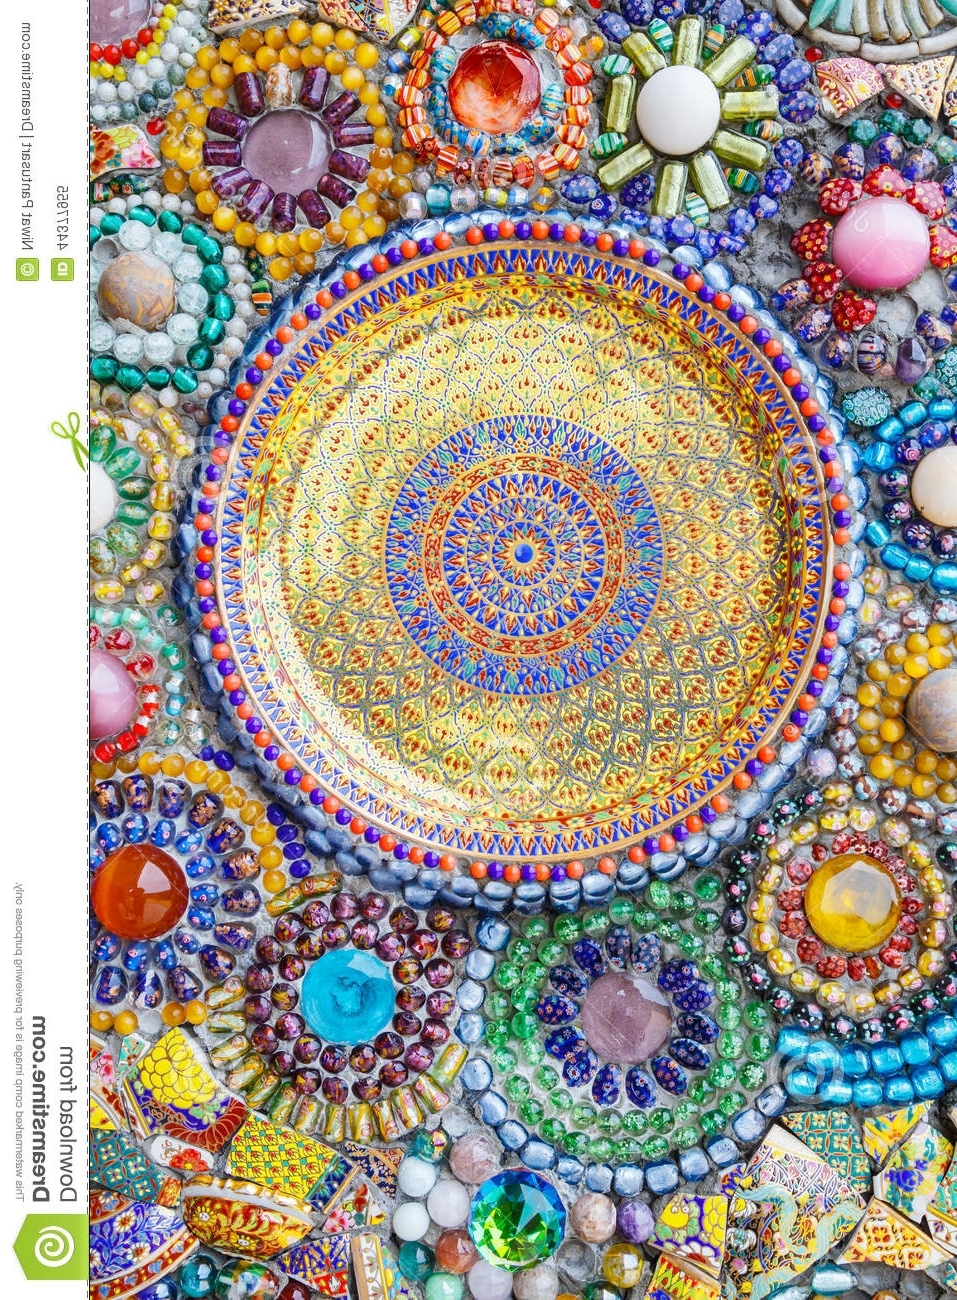 Favorite Colorful Mosaic Art Abstract Wall Background Stock Image – Image With Regard To Abstract Mosaic Art On Wall (View 10 of 15)